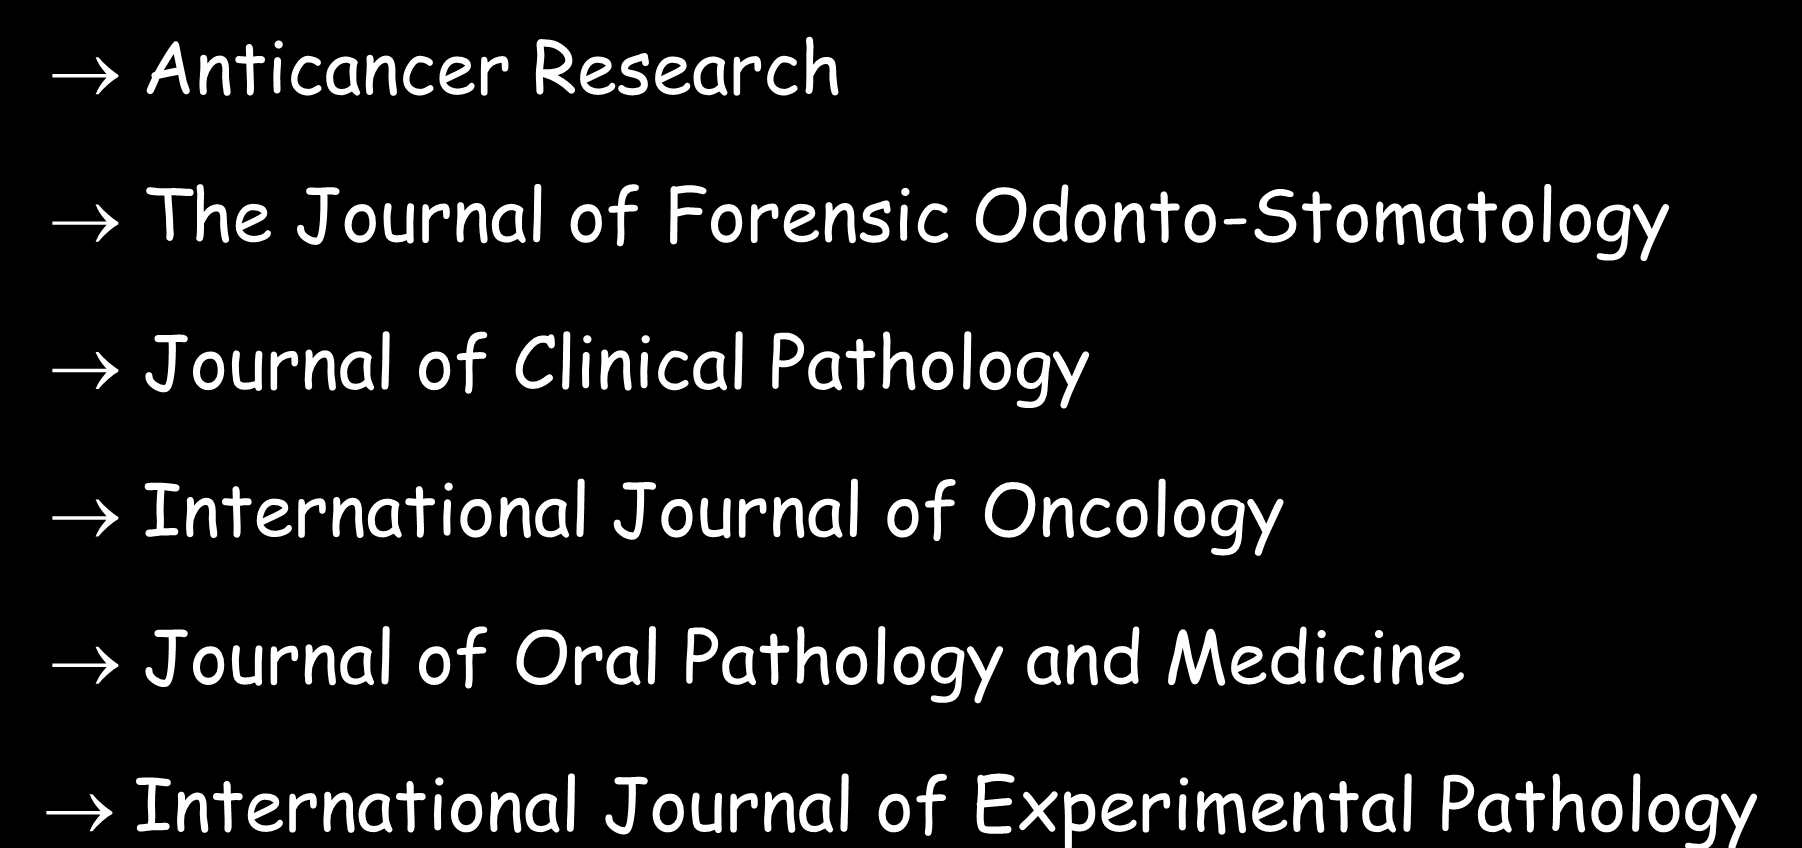 PERIÓDICOS - SUGESTÕES ESTOMATOLOGIA / PATOLOGIA BUCAL Anticancer Research The Journal of Forensic Odonto-Stomatology Journal of